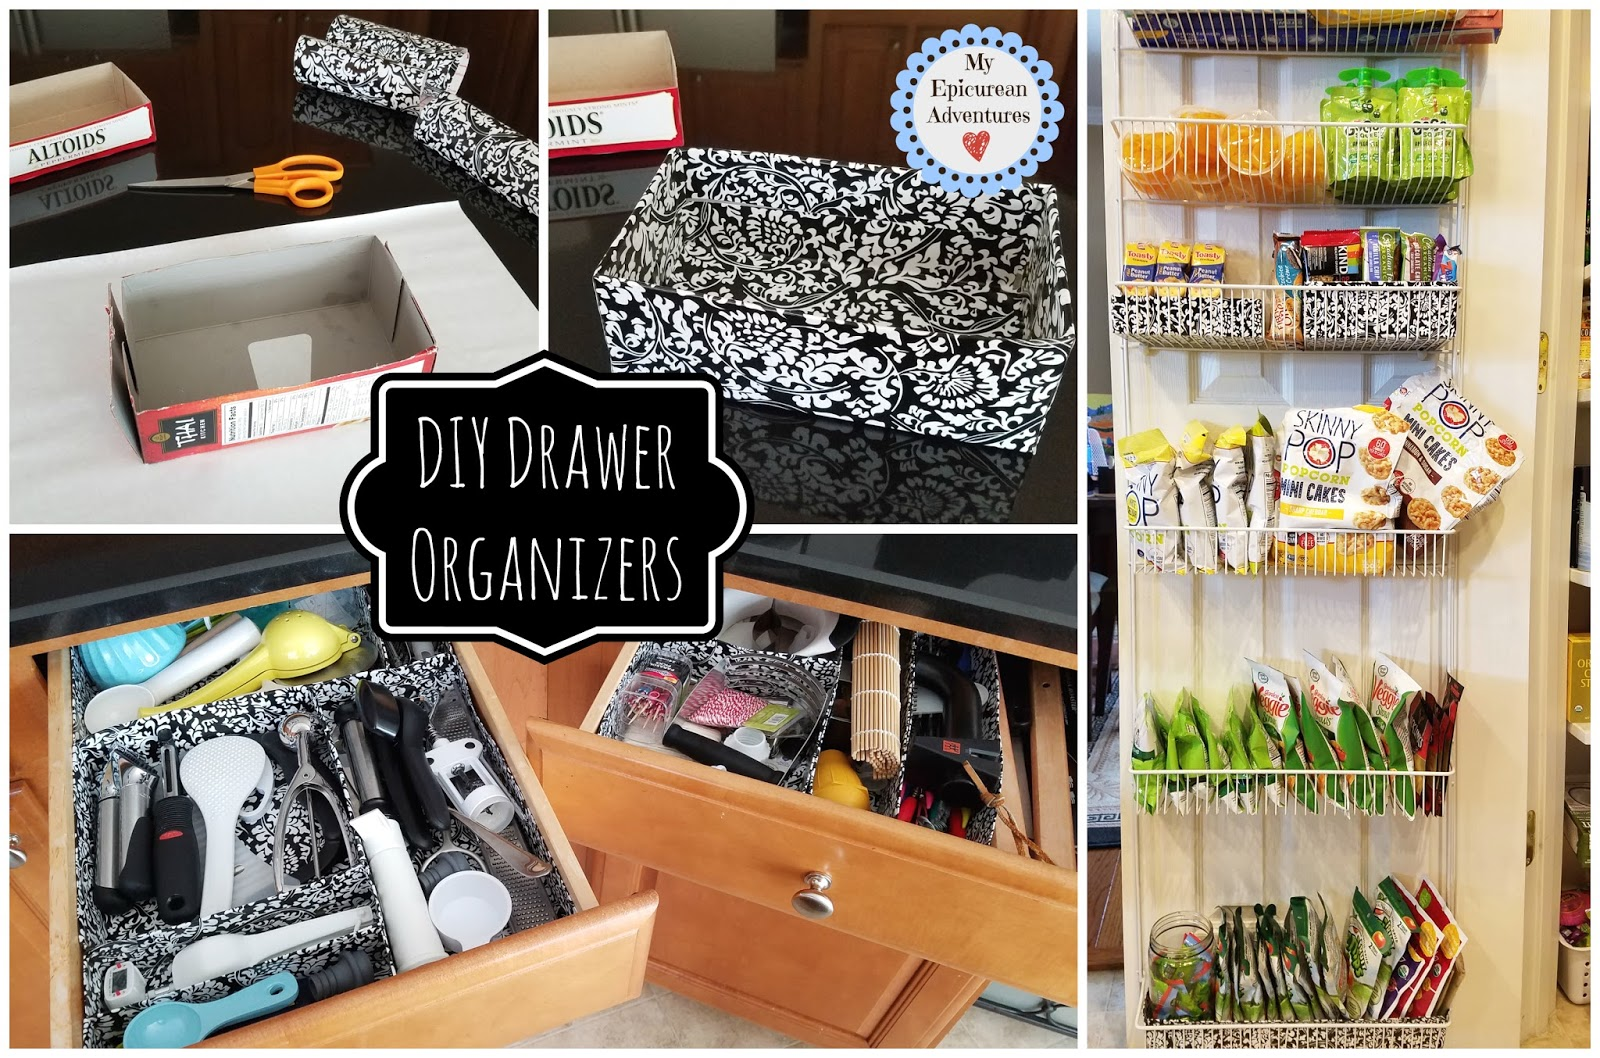 Do it yourself drawer organizers using cereal boxes my epicurean in elementary school was to tackle my messy kitchen drawers the hubby had been grumbling about them quite a bit so i decided it was finally time diy solutioingenieria Image collections